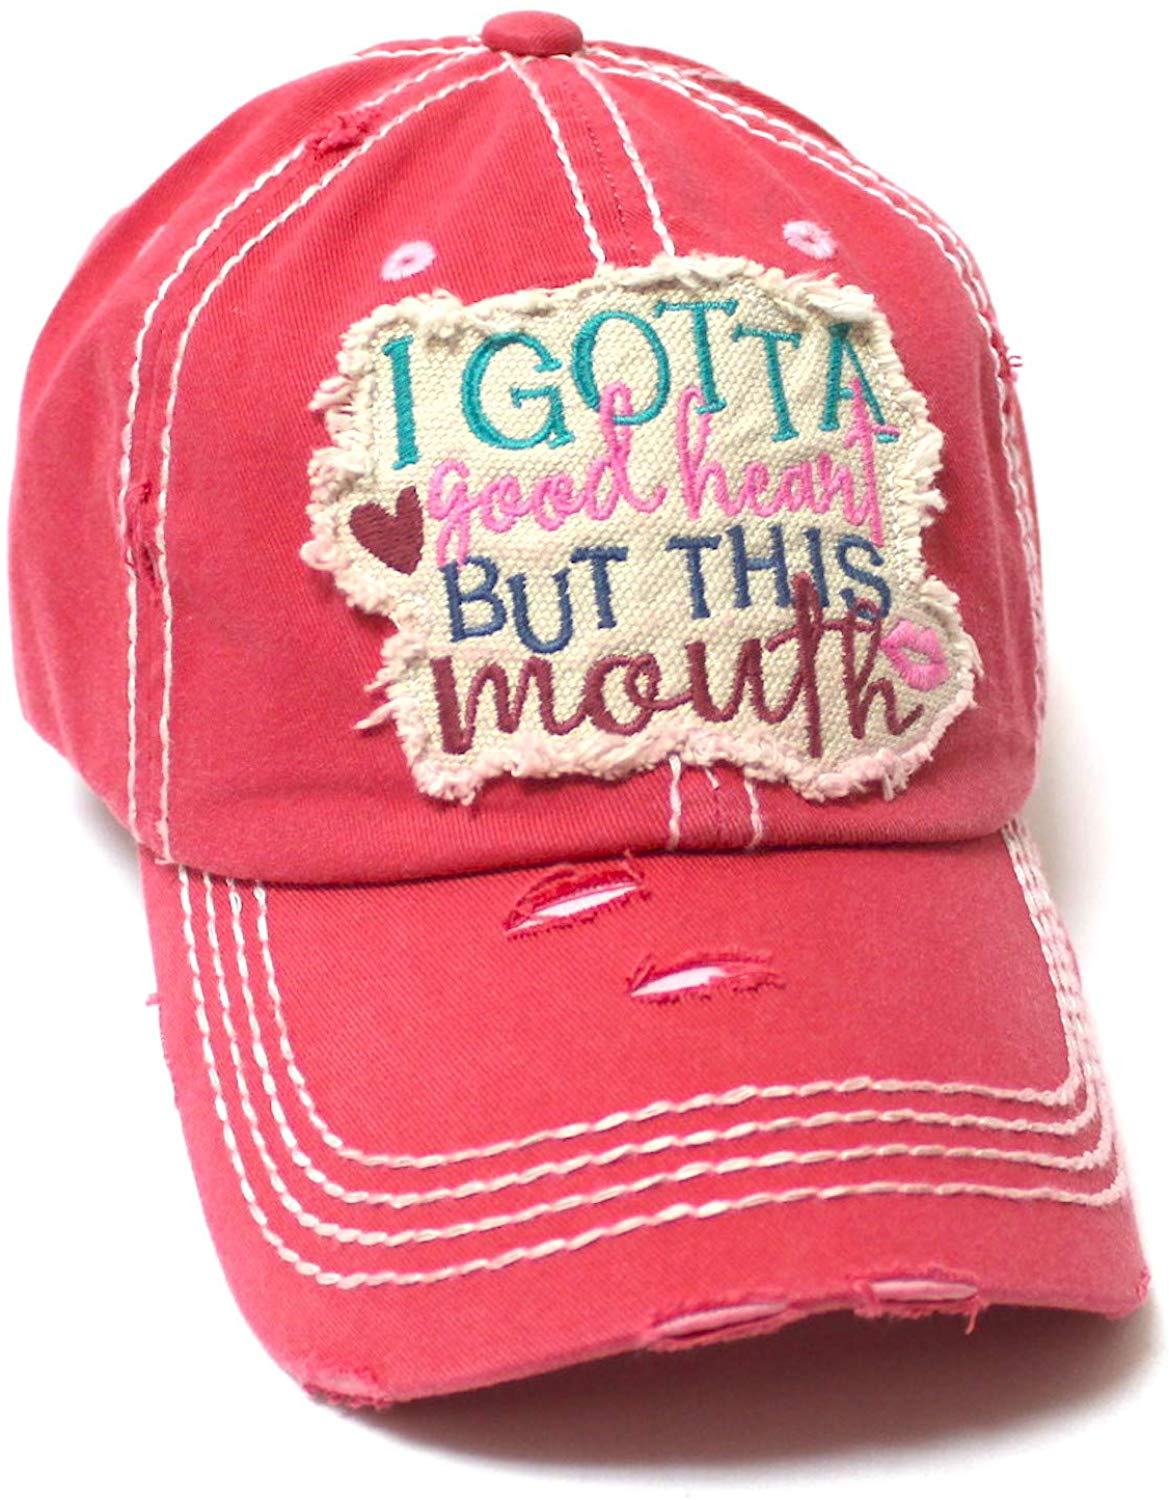 Women's Distressed Ballcap I Gotta Good Heart but This Mouth Hearts, Kisses Patch Embroidery Hat, Coral Rose - Caps 'N Vintage